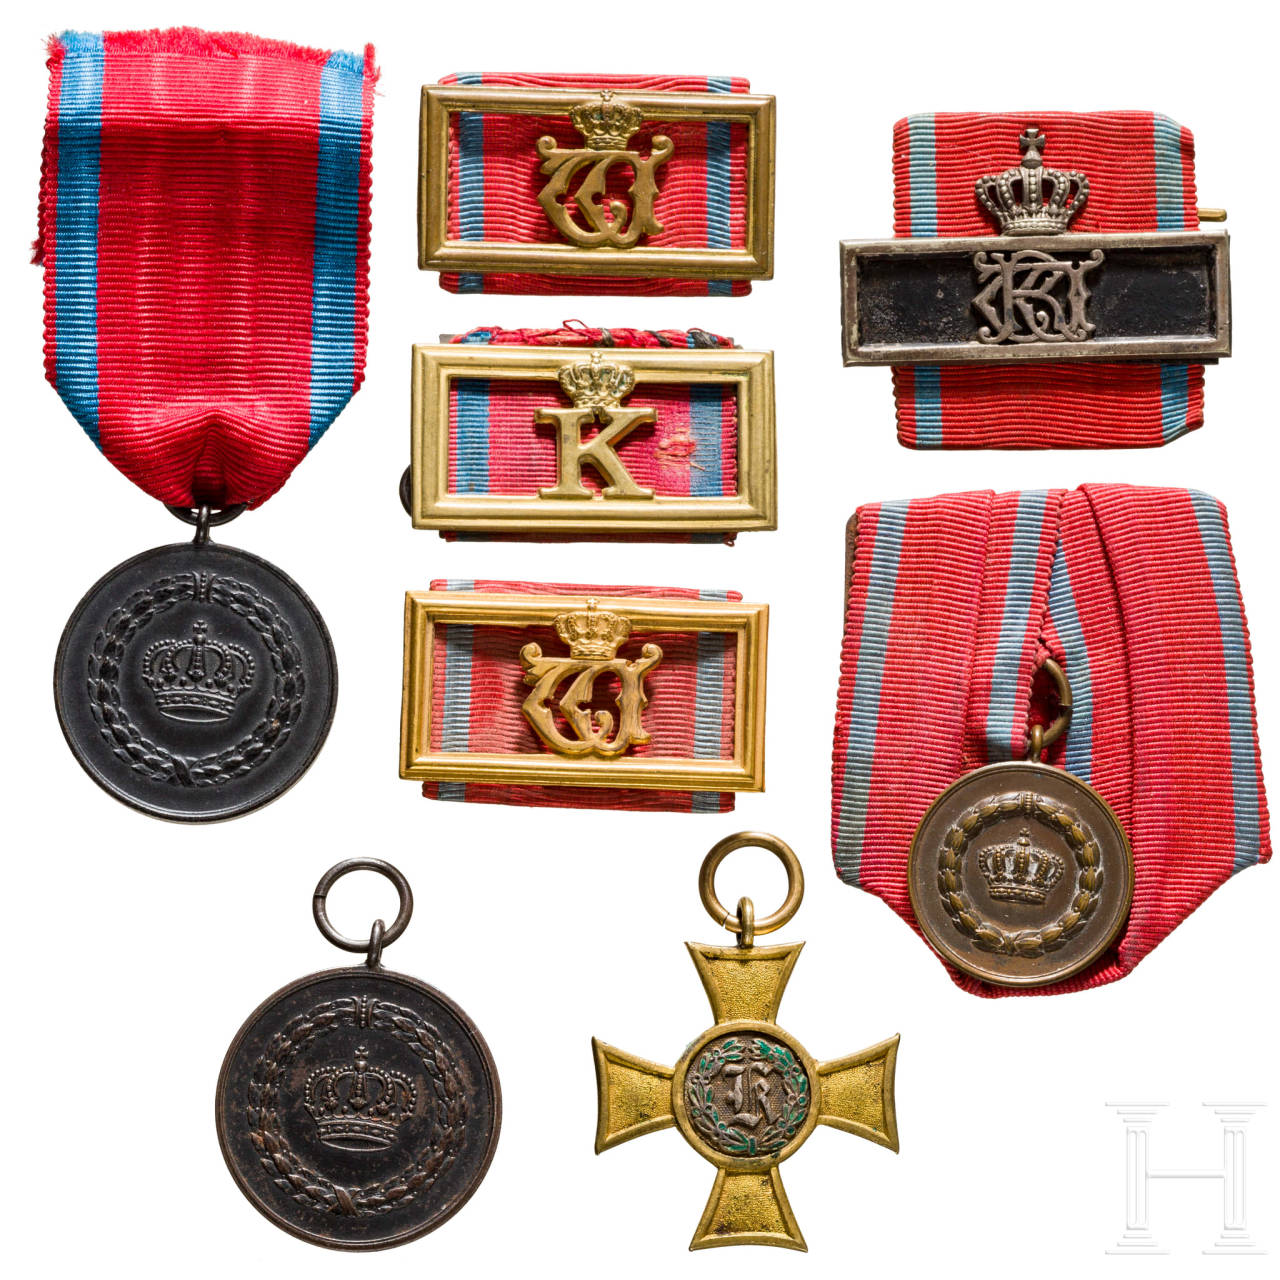 A group of service awards